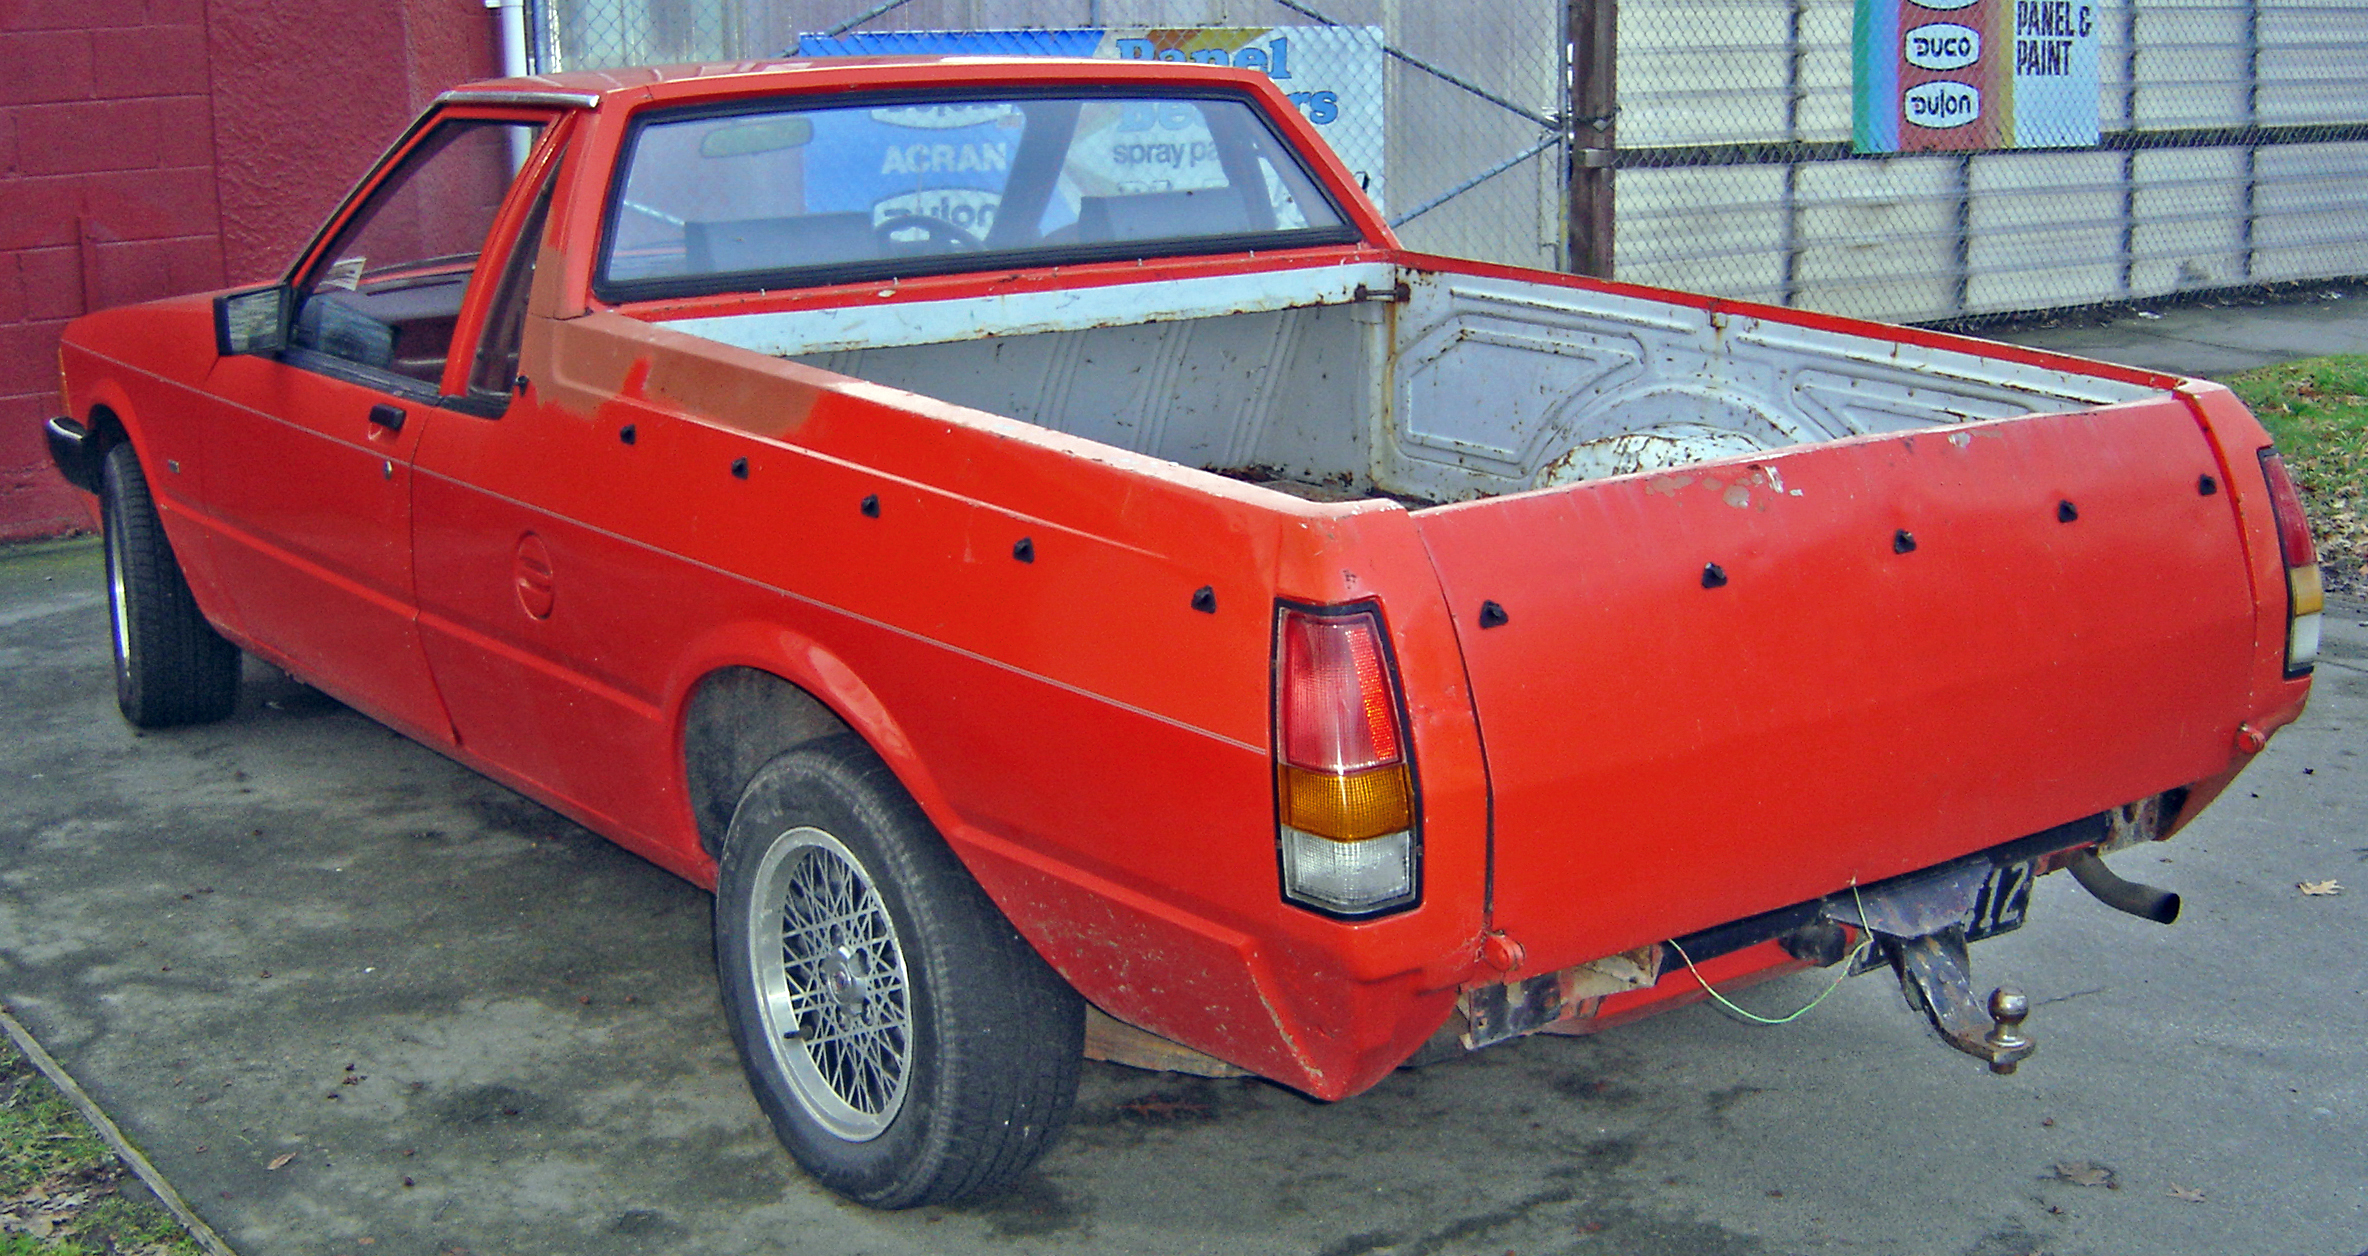 Build A Ford >> File:Ford Falcon XD 1982 Ute Back.JPG - Wikimedia Commons